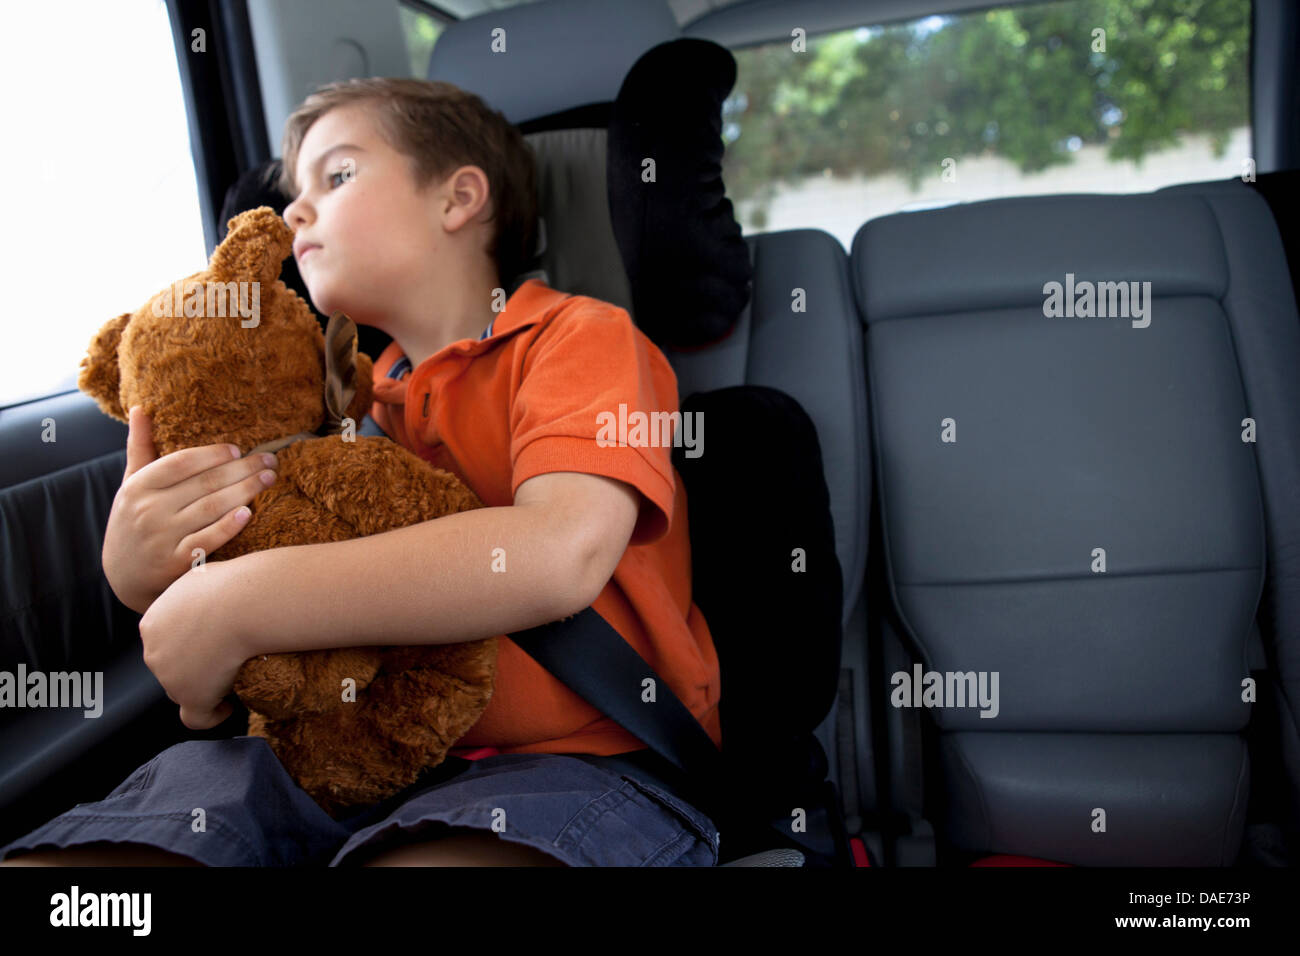 Boy looking out of car window holding teddy bear - Stock Image